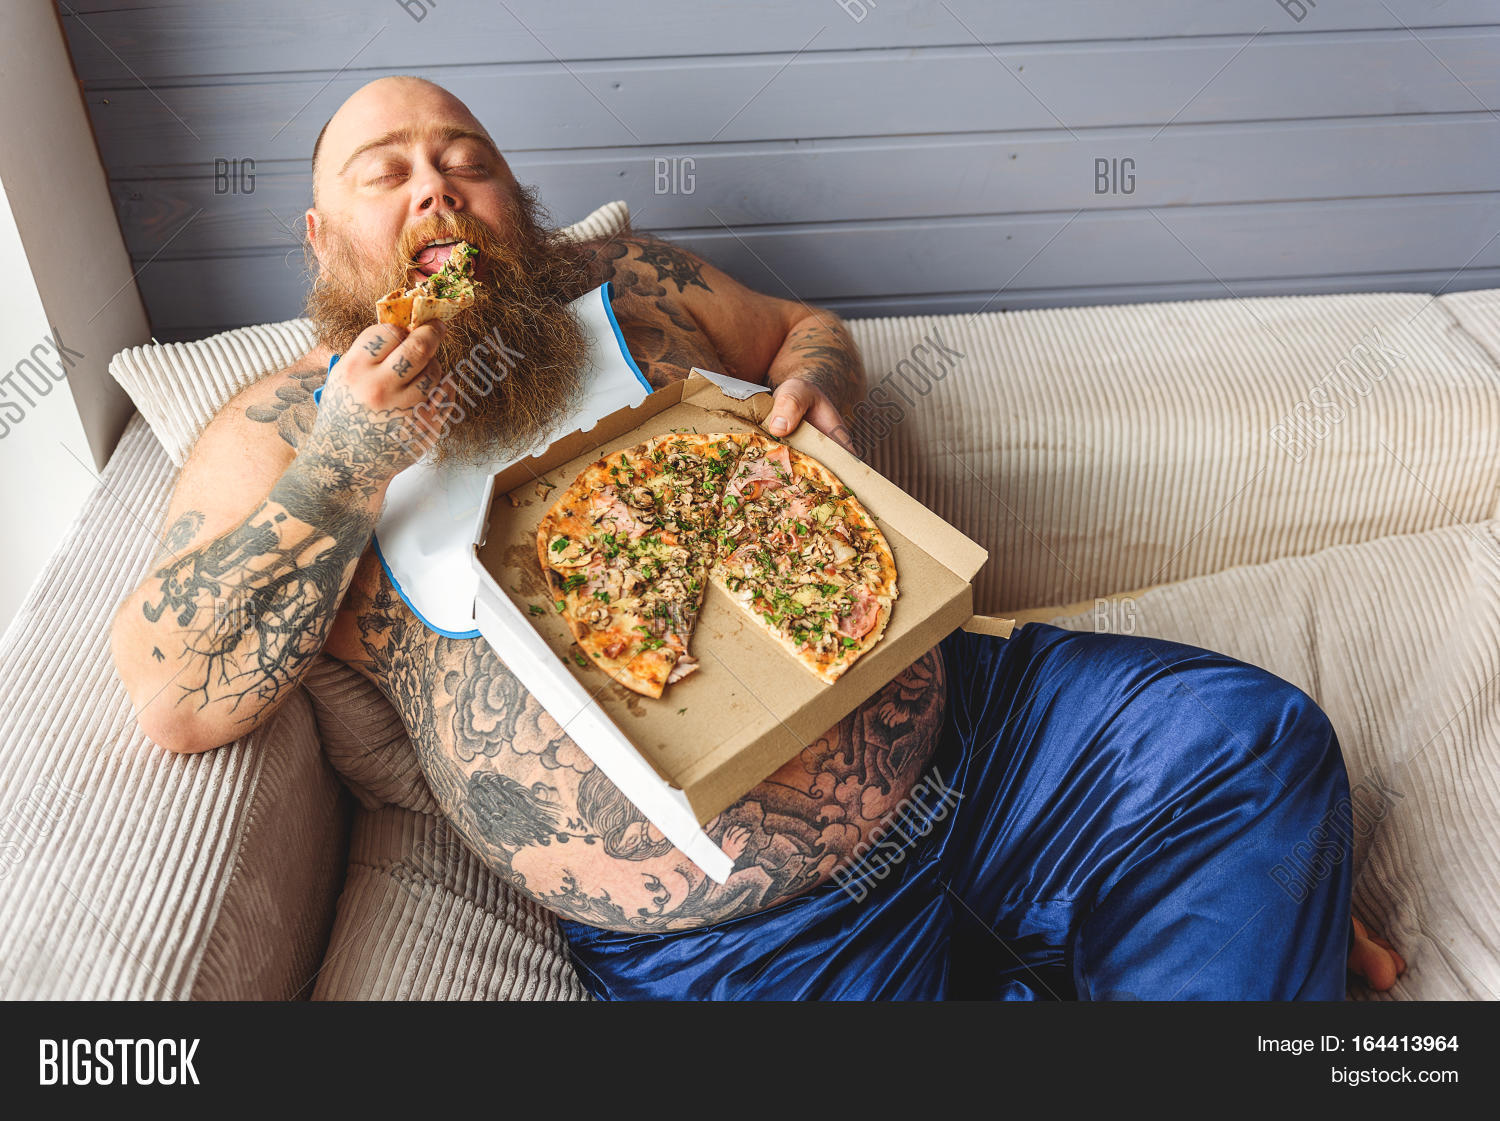 Lazy Fat Man Is Eating Pizza With Ee His Lying On Sofa Closed